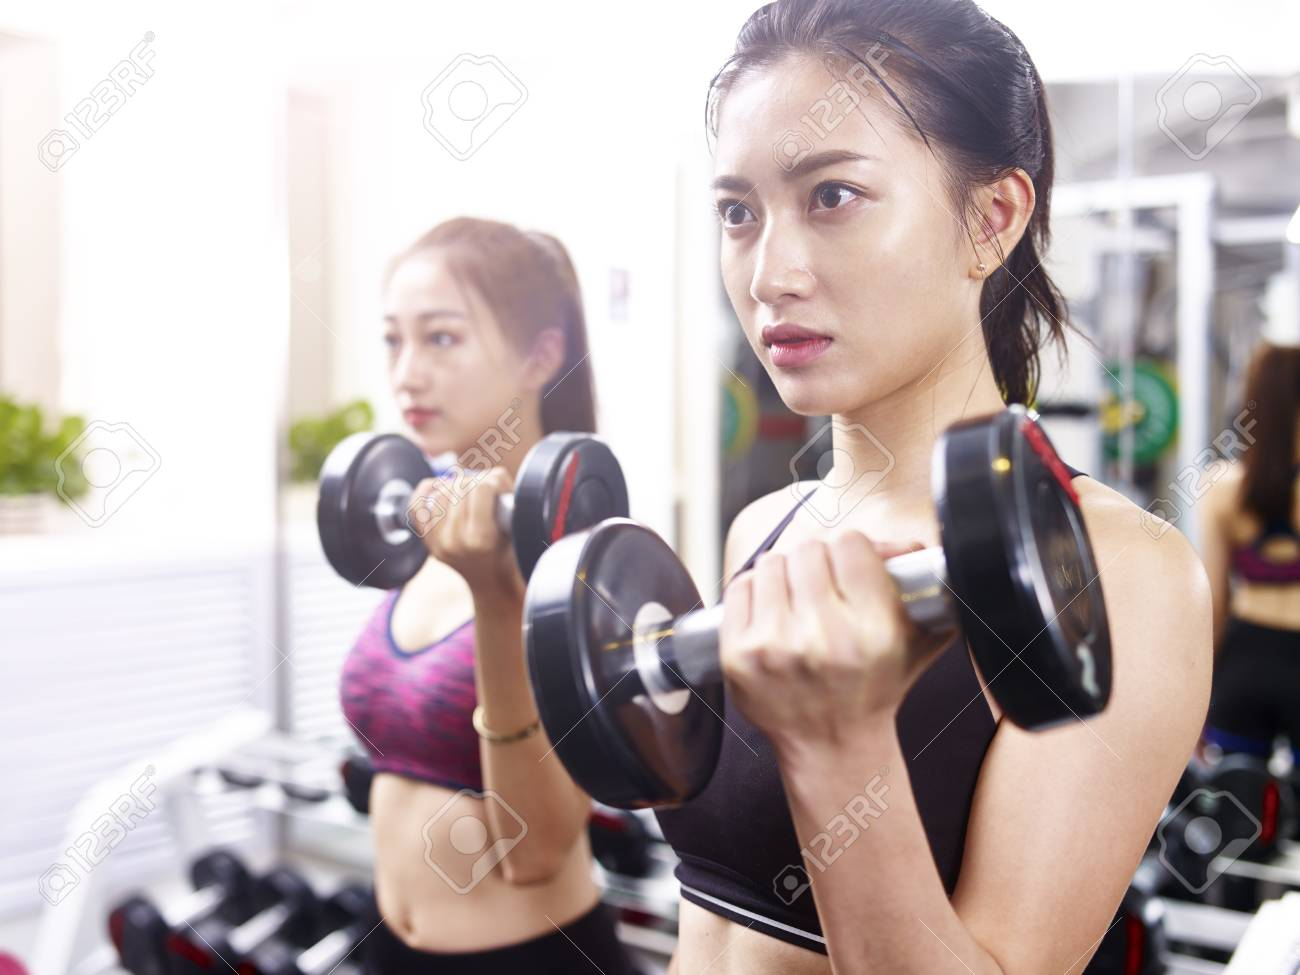 two young asian women working out exercising in gym using dumbbells. - 89328939